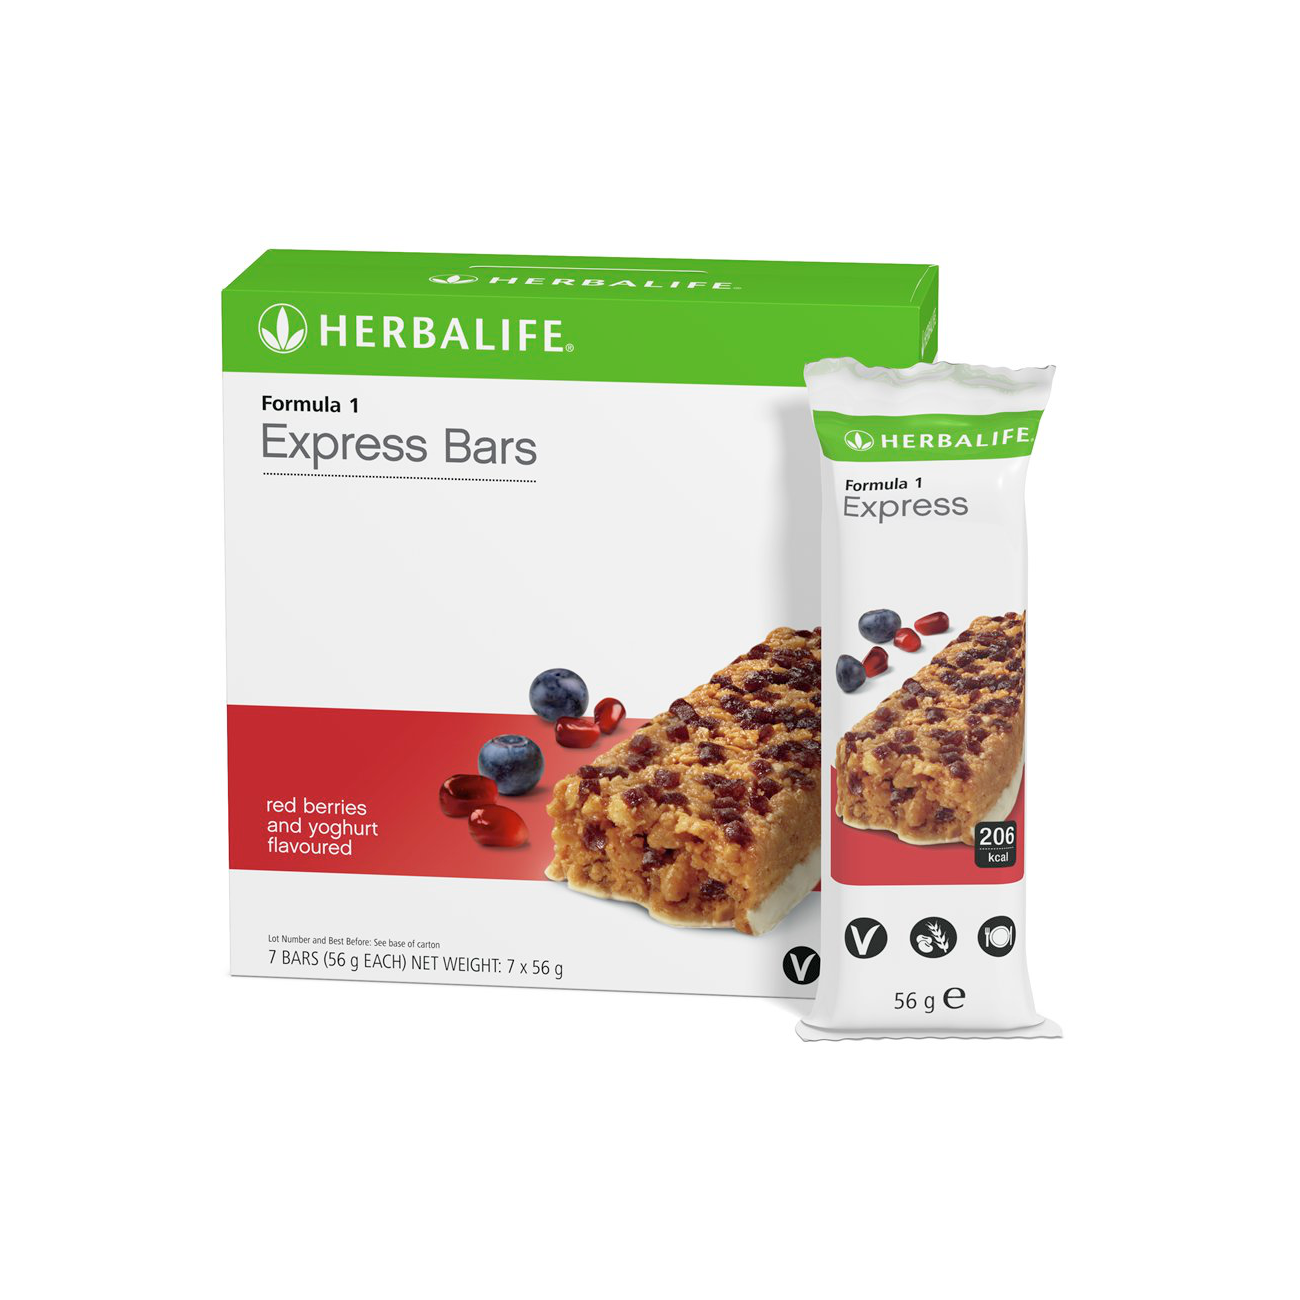 Formula 1 Express Bars  Red Berries and Yoghurt Flavoured product shot